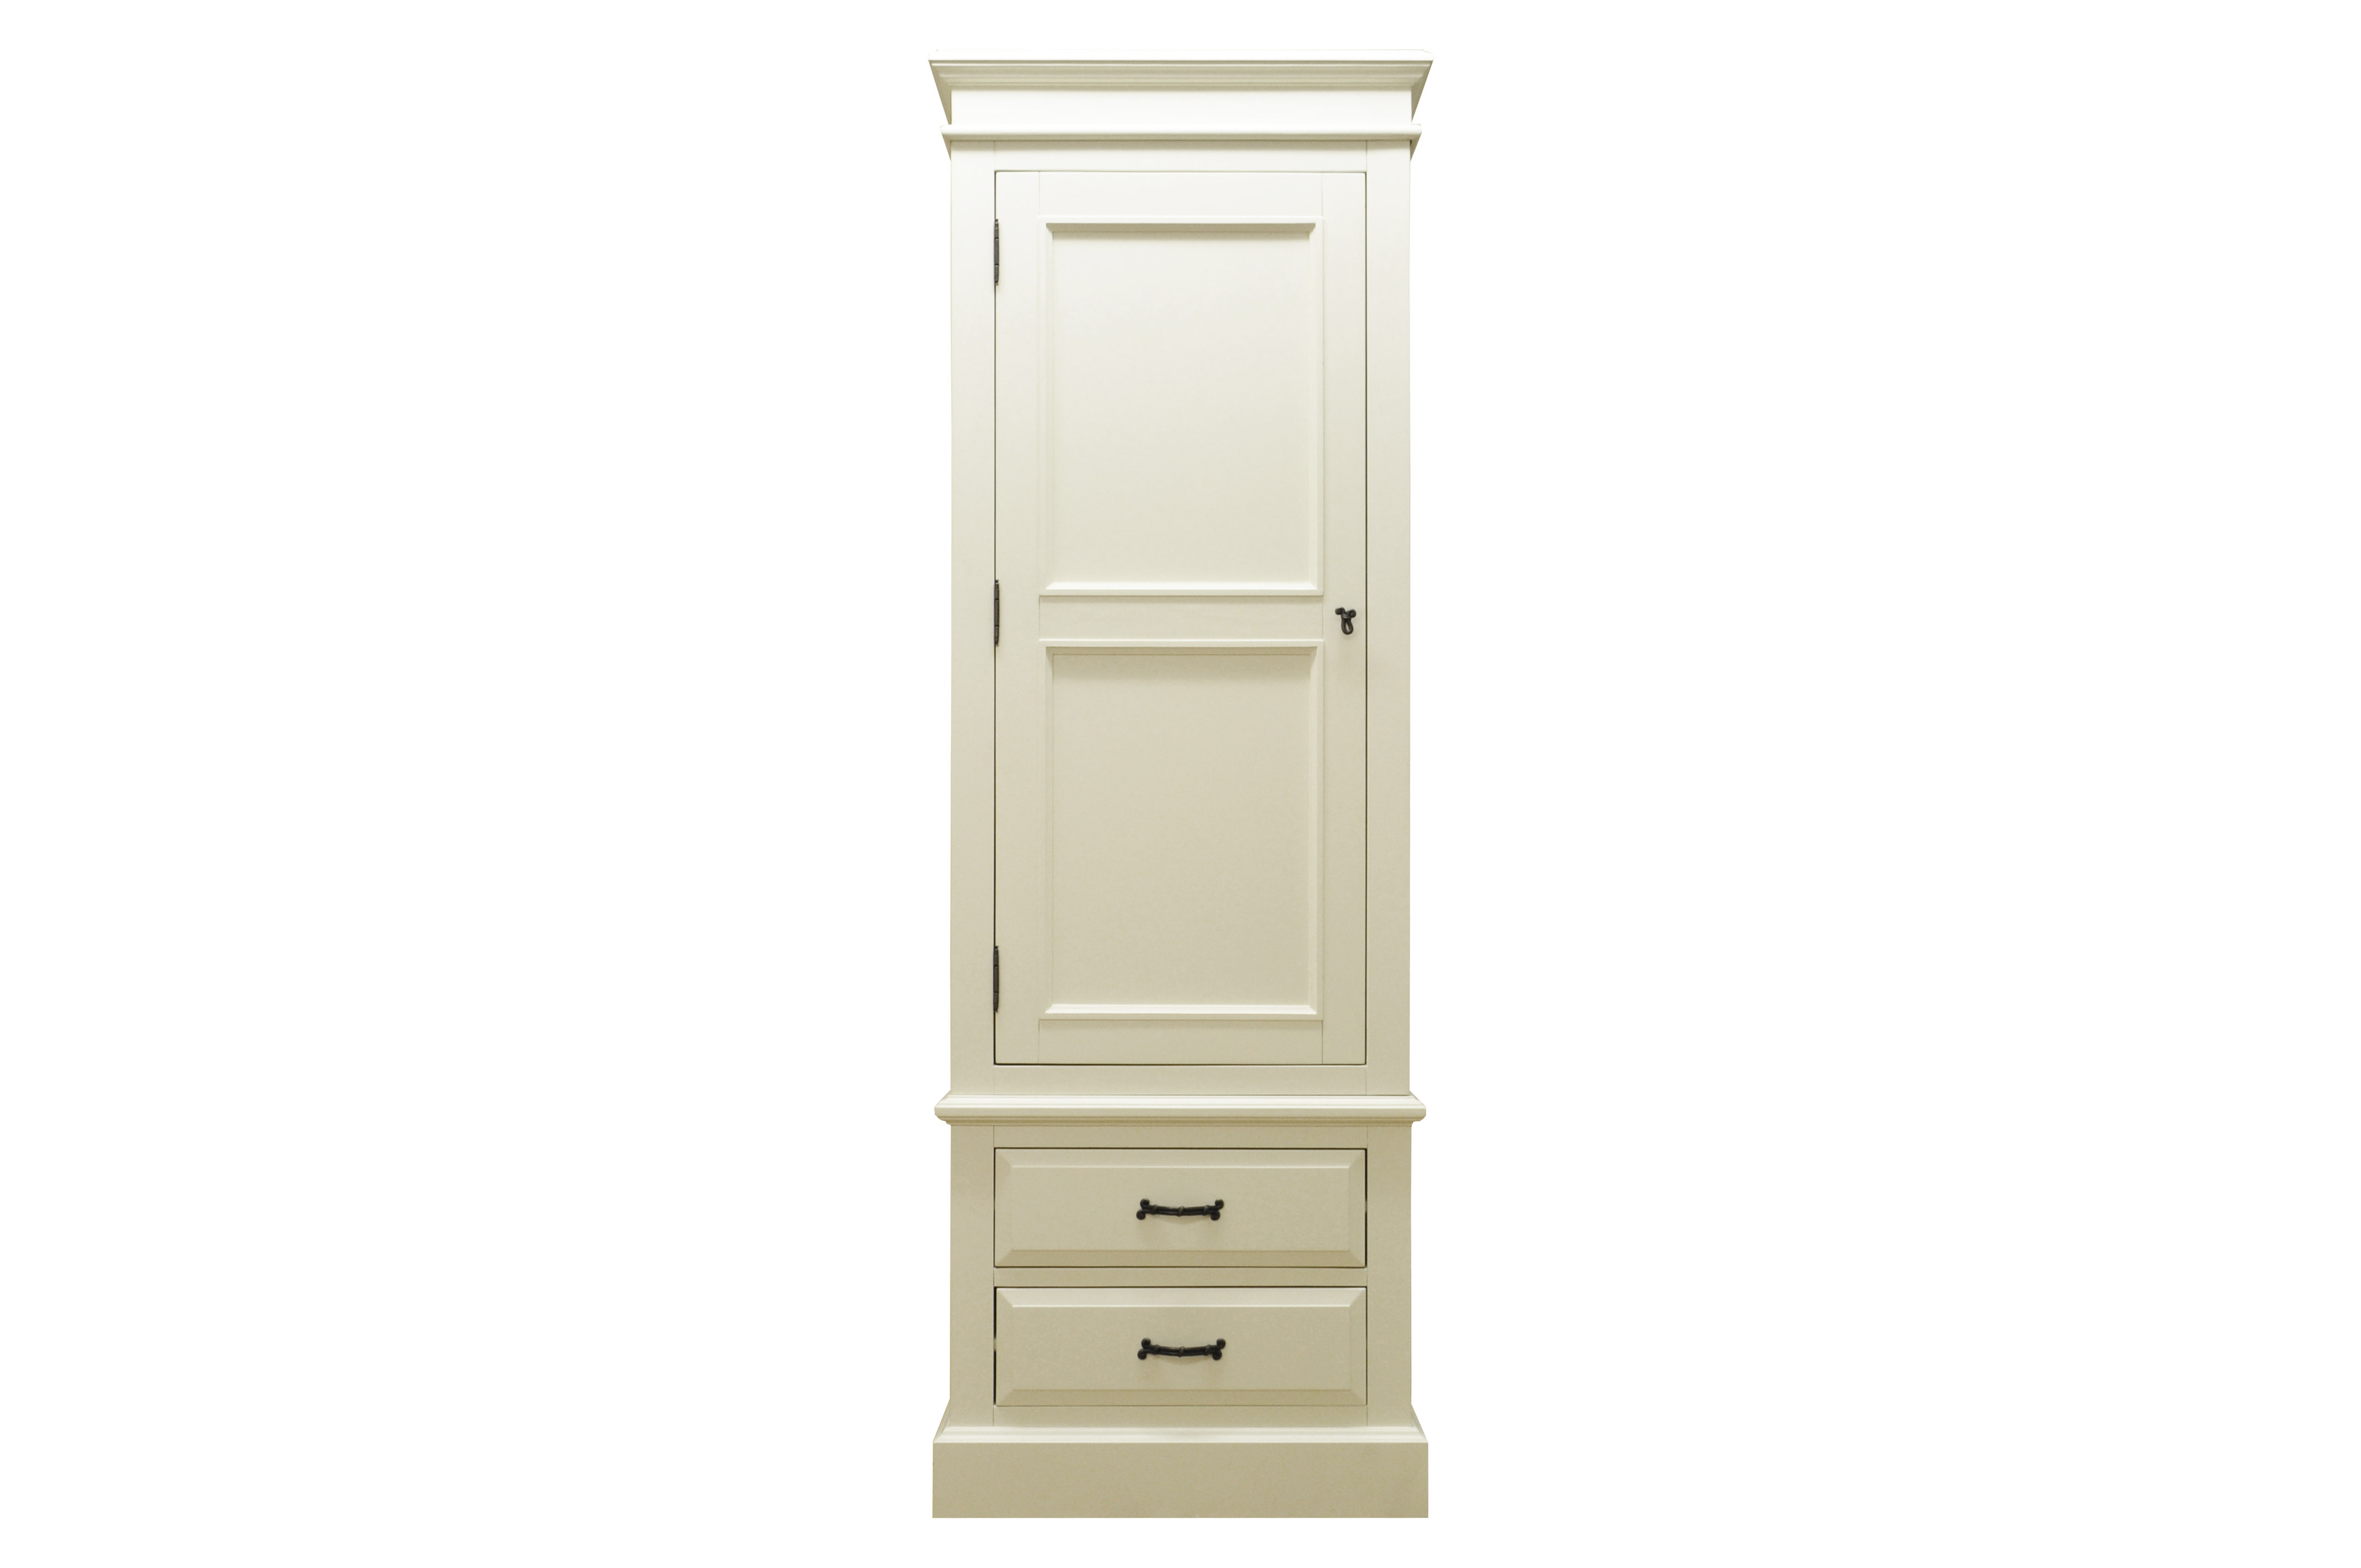 Explore More #816F4A KI Cheshire Single Wardrobe Country Furniture Barn  With 6291 This Yearu0027s Single